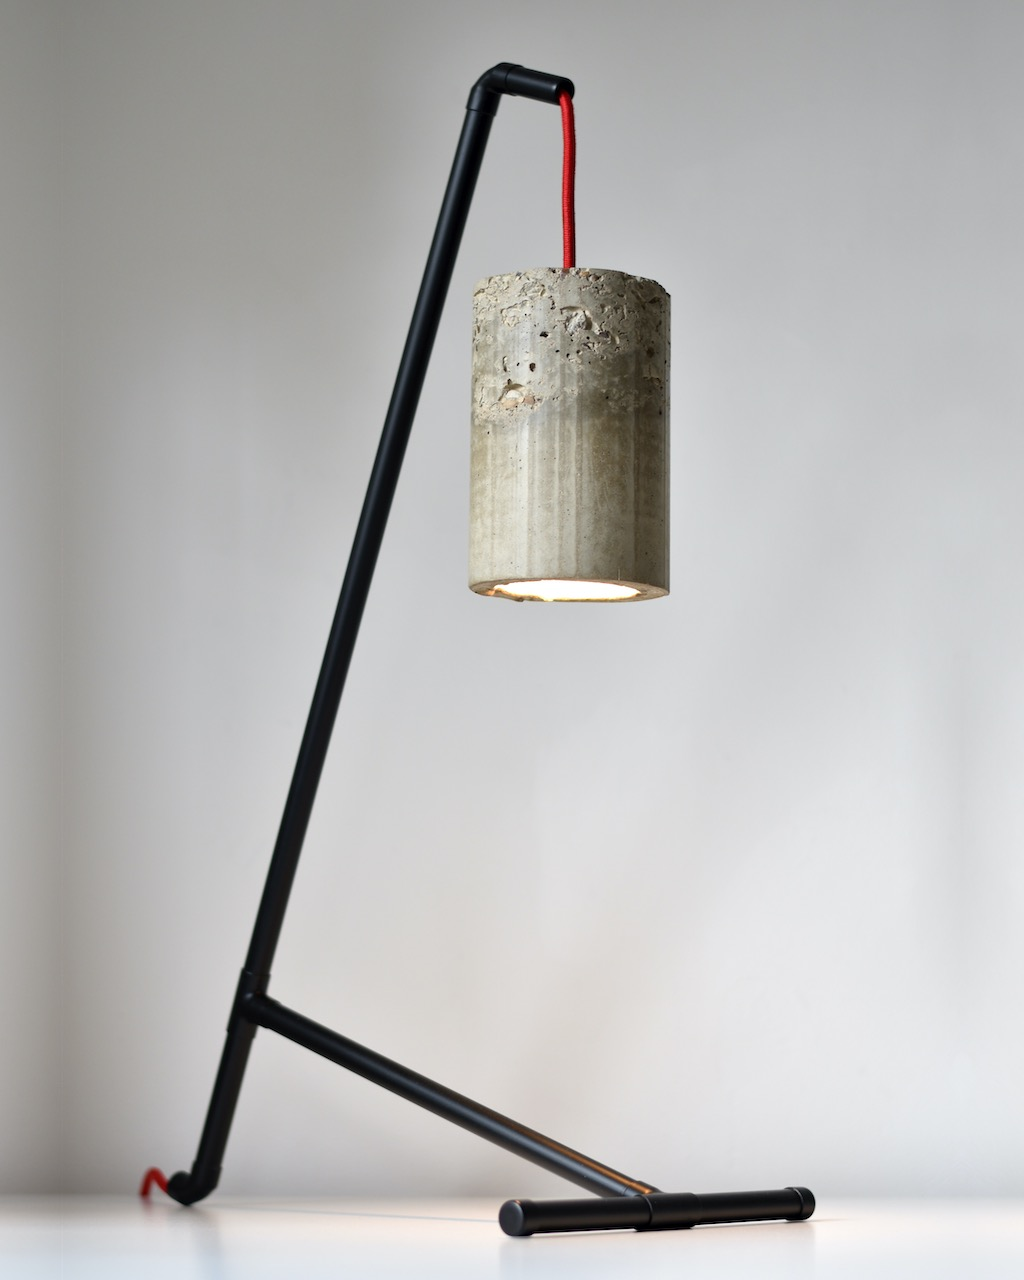 Raw Concrete Table Lamp – Black With Red Cord